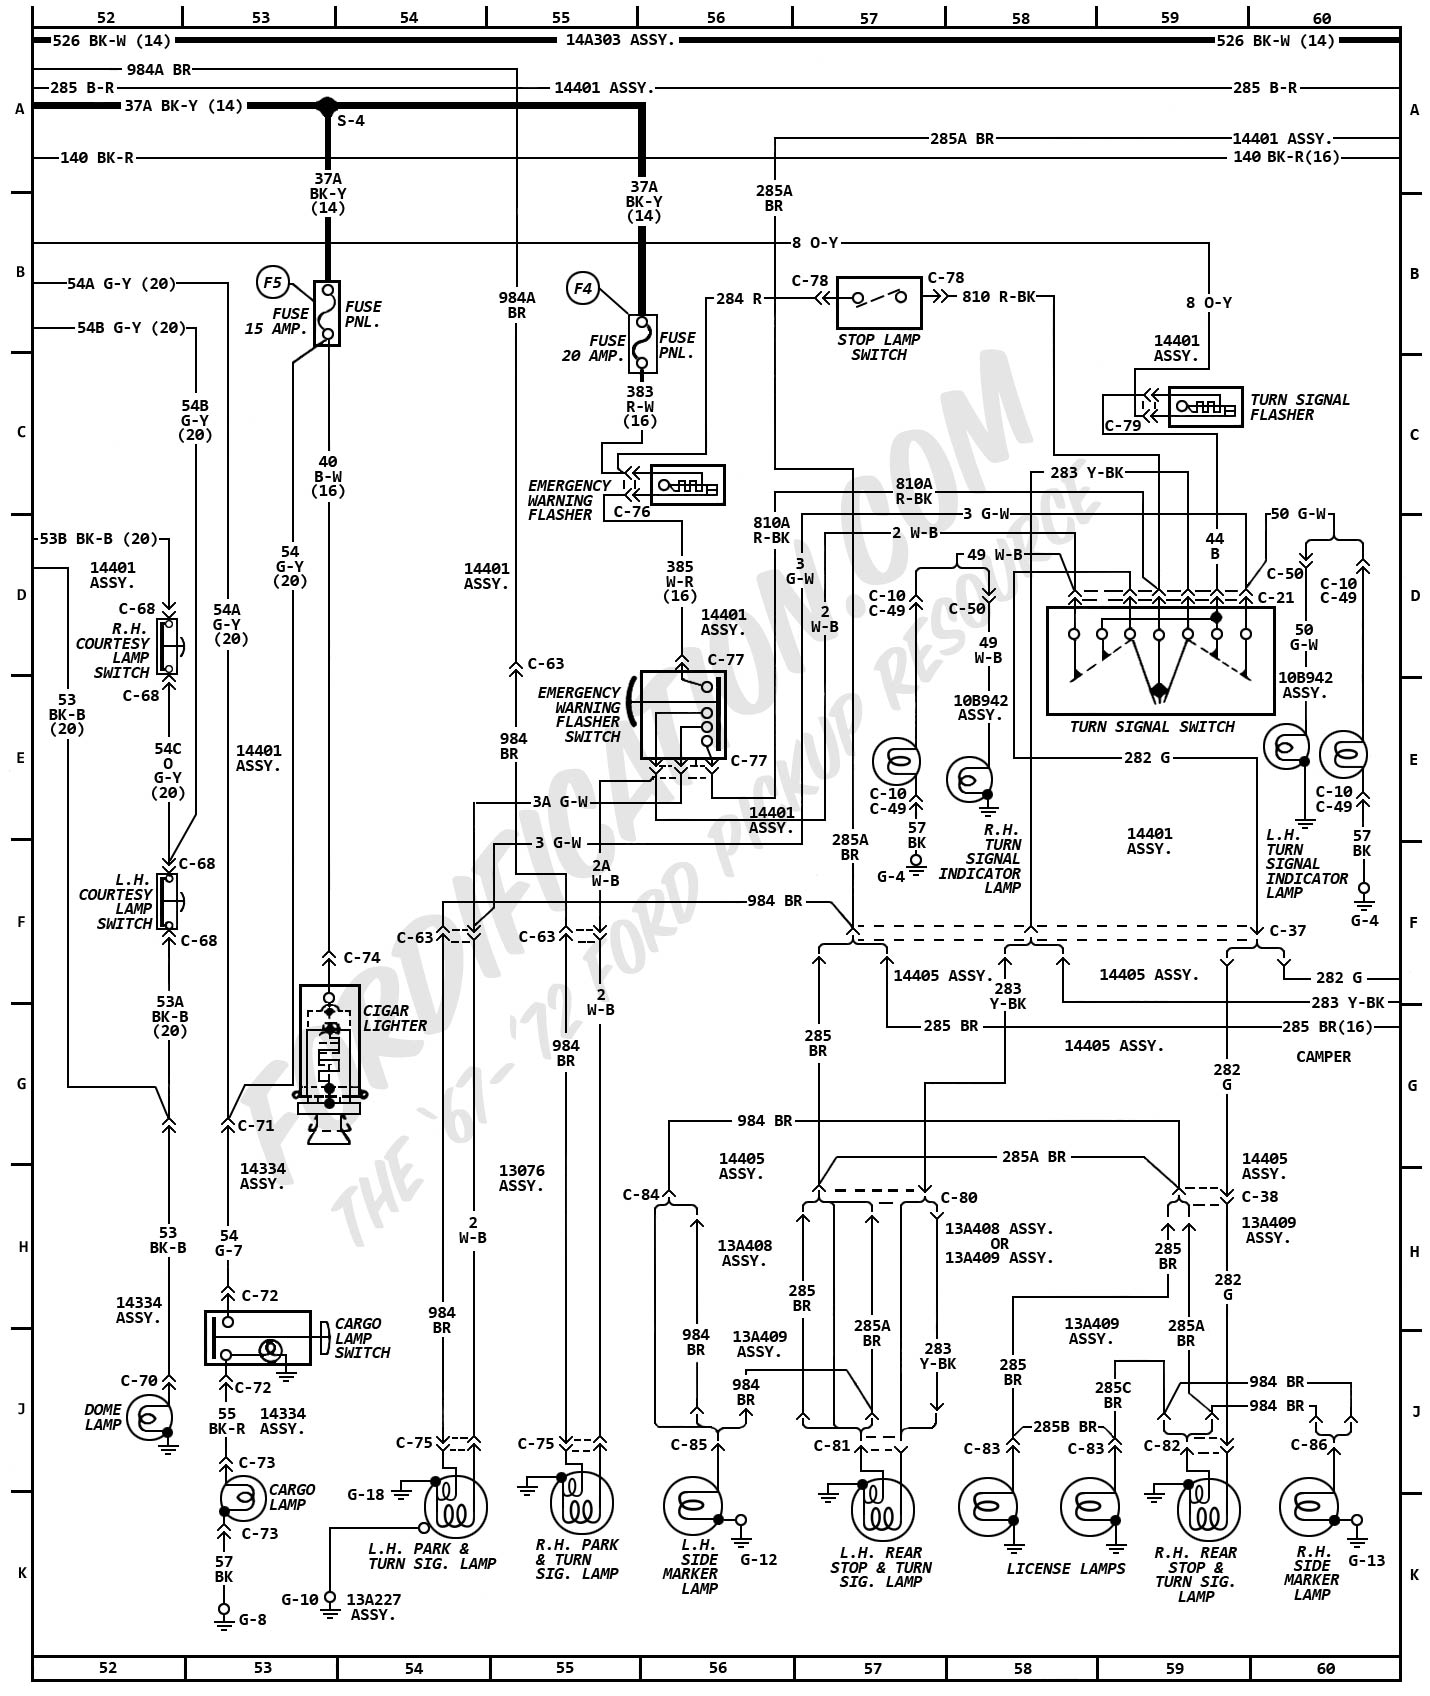 wiring diagram for ford pickup wn 0010  rat rod wiring diagram wiring diagram  wn 0010  rat rod wiring diagram wiring